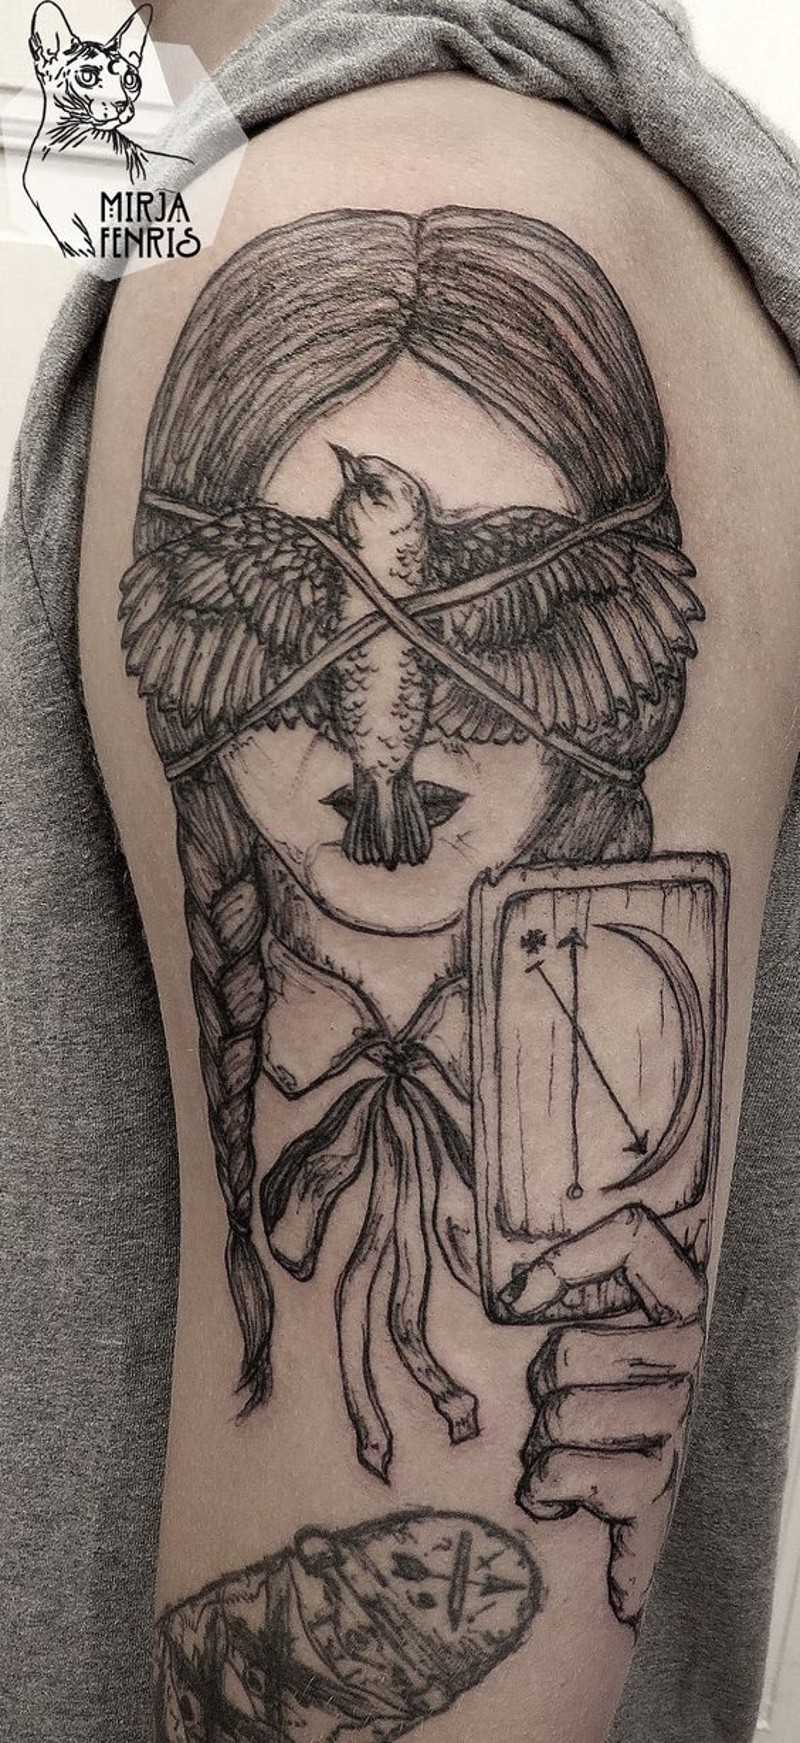 Awesome homemade like black ink cult woman with card tattoo on arm